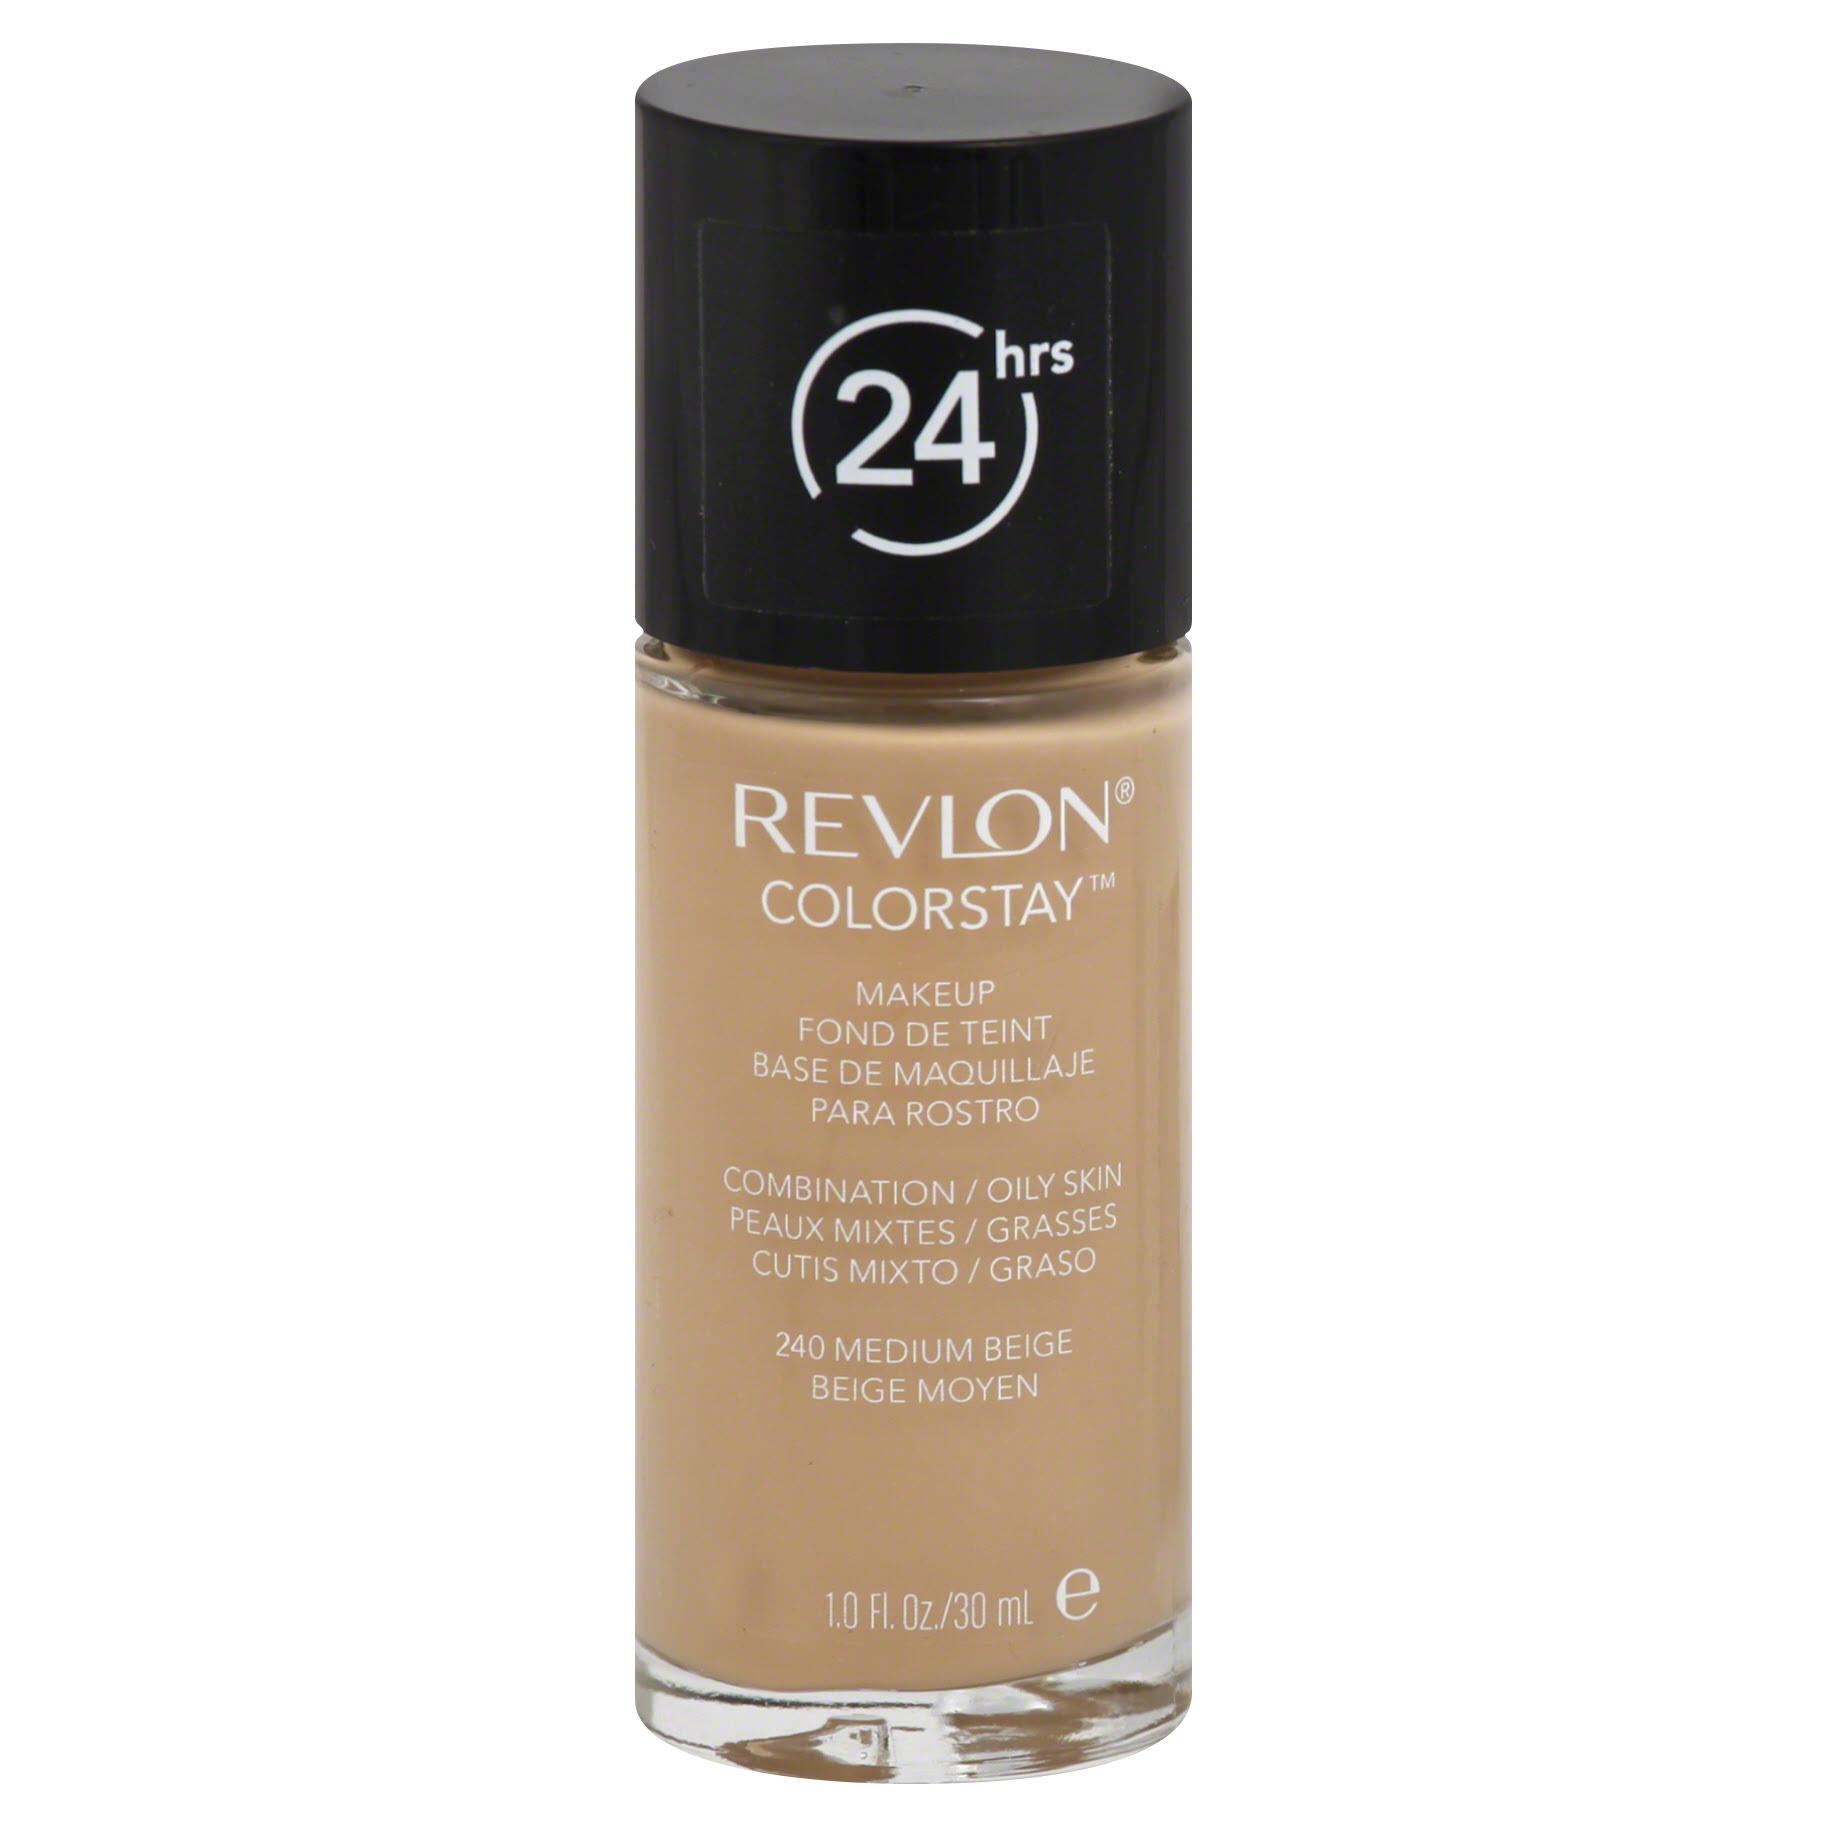 Revlon Colorstay Makeup for Combination Oily Skin Foundation - 240 Medium Beige, 1oz